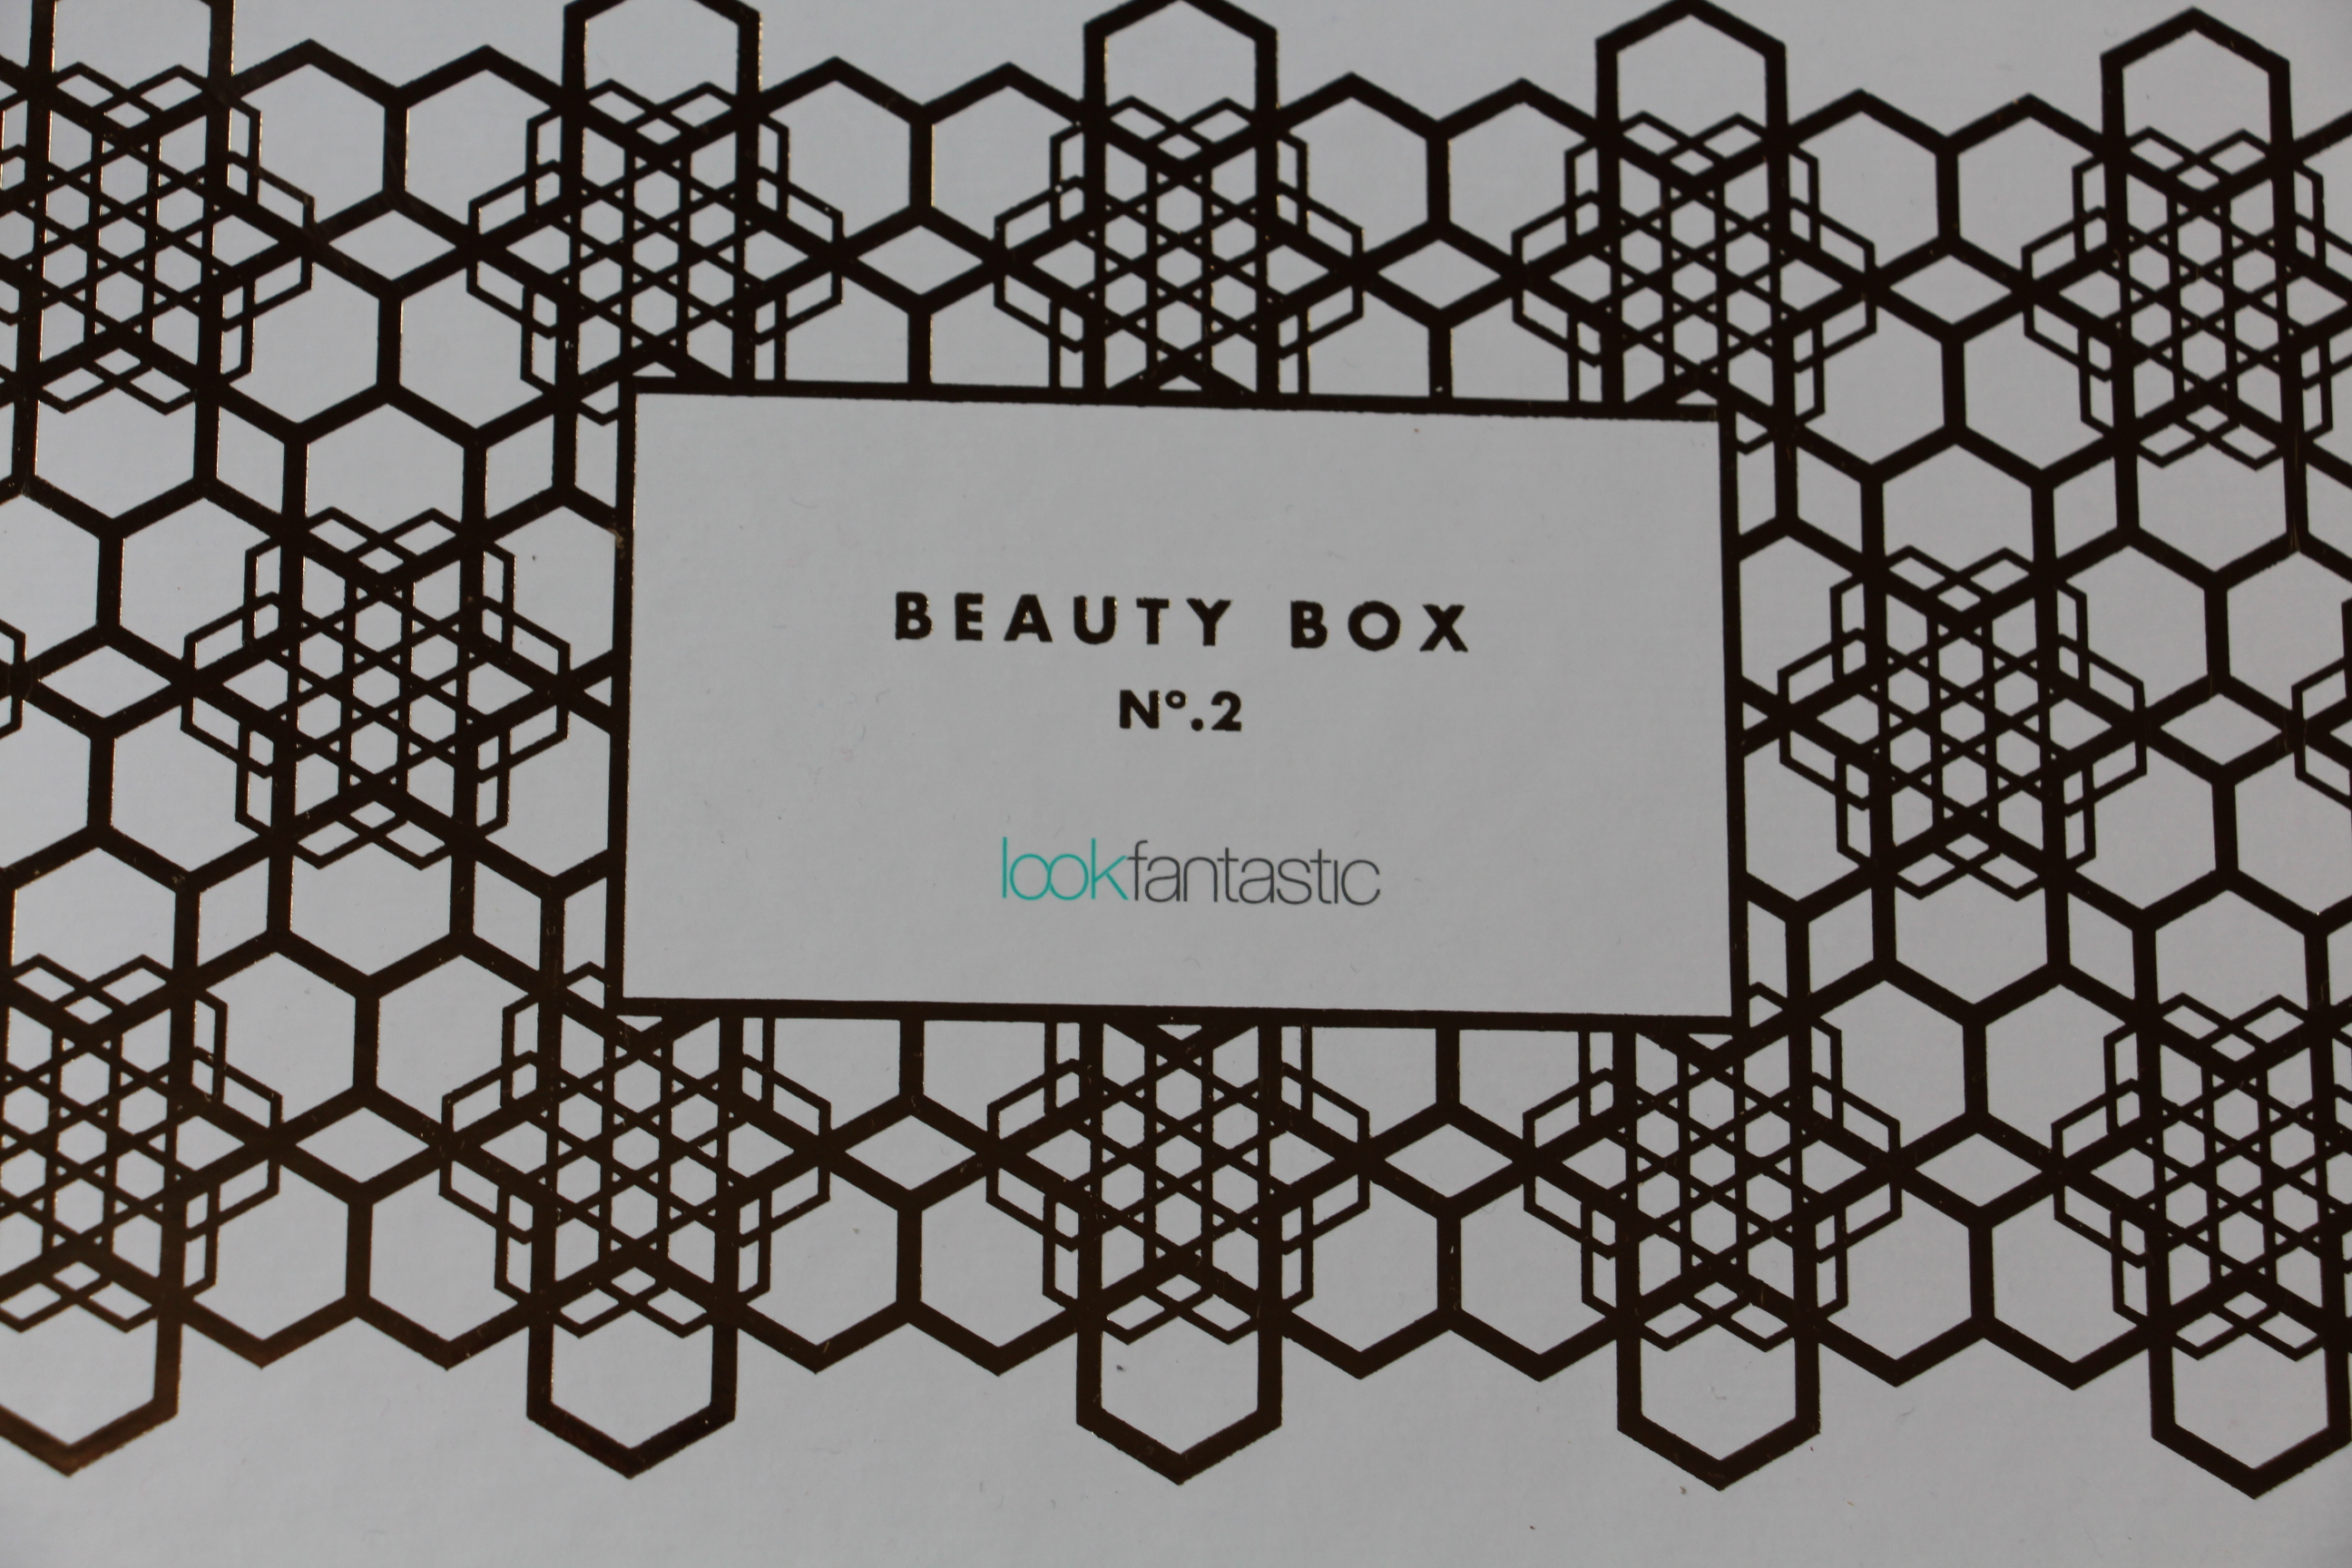 Vorstellung: Lookfantastic-Box im November 2015